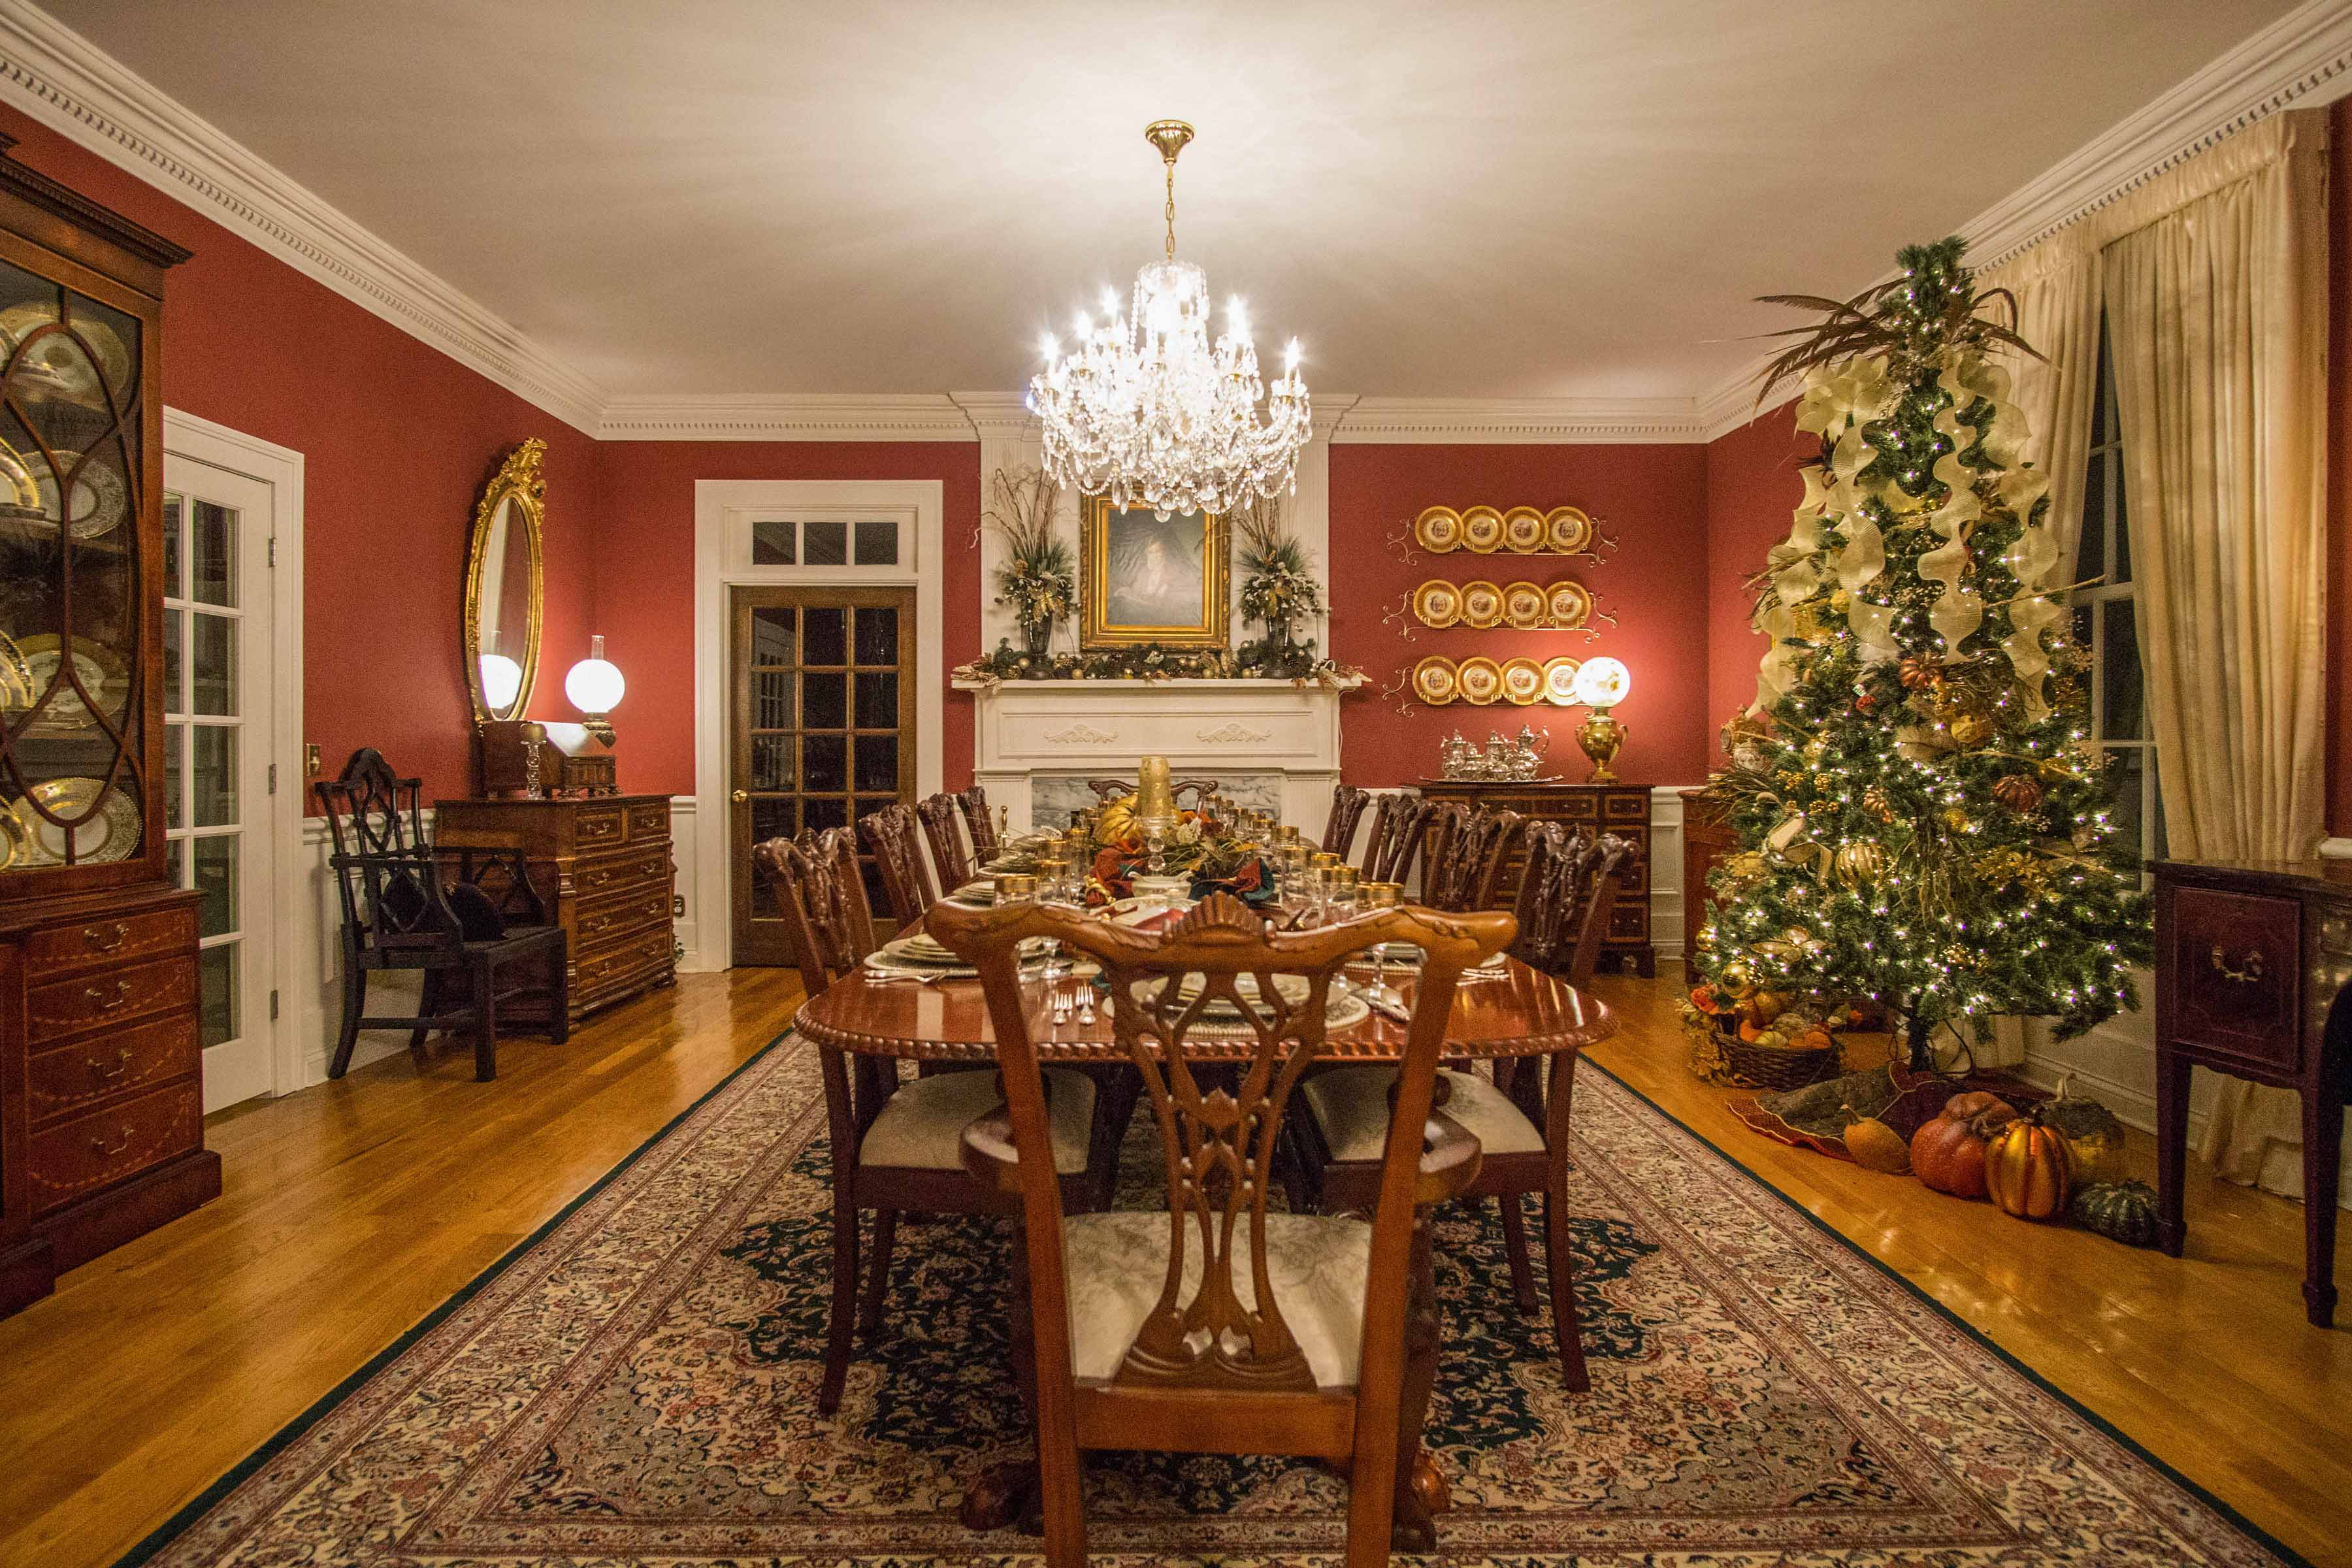 This home is the perfect place to gather for the holidays!